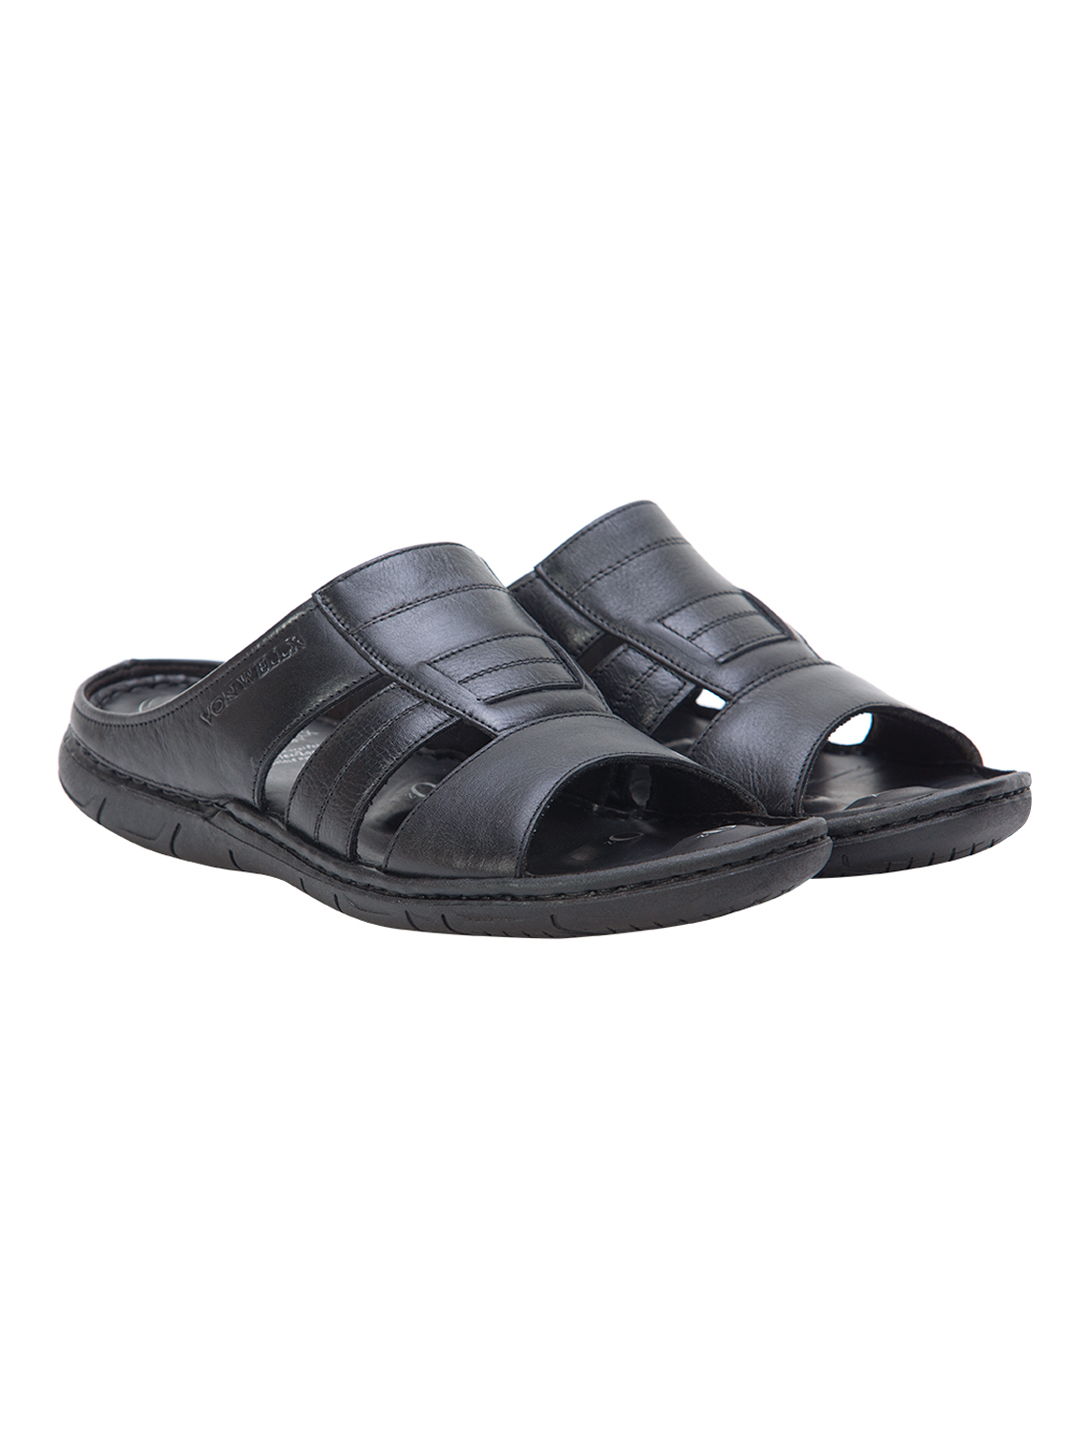 Buy Von Wellx Germany Comfort Gait Black Slippers Online in Kandy